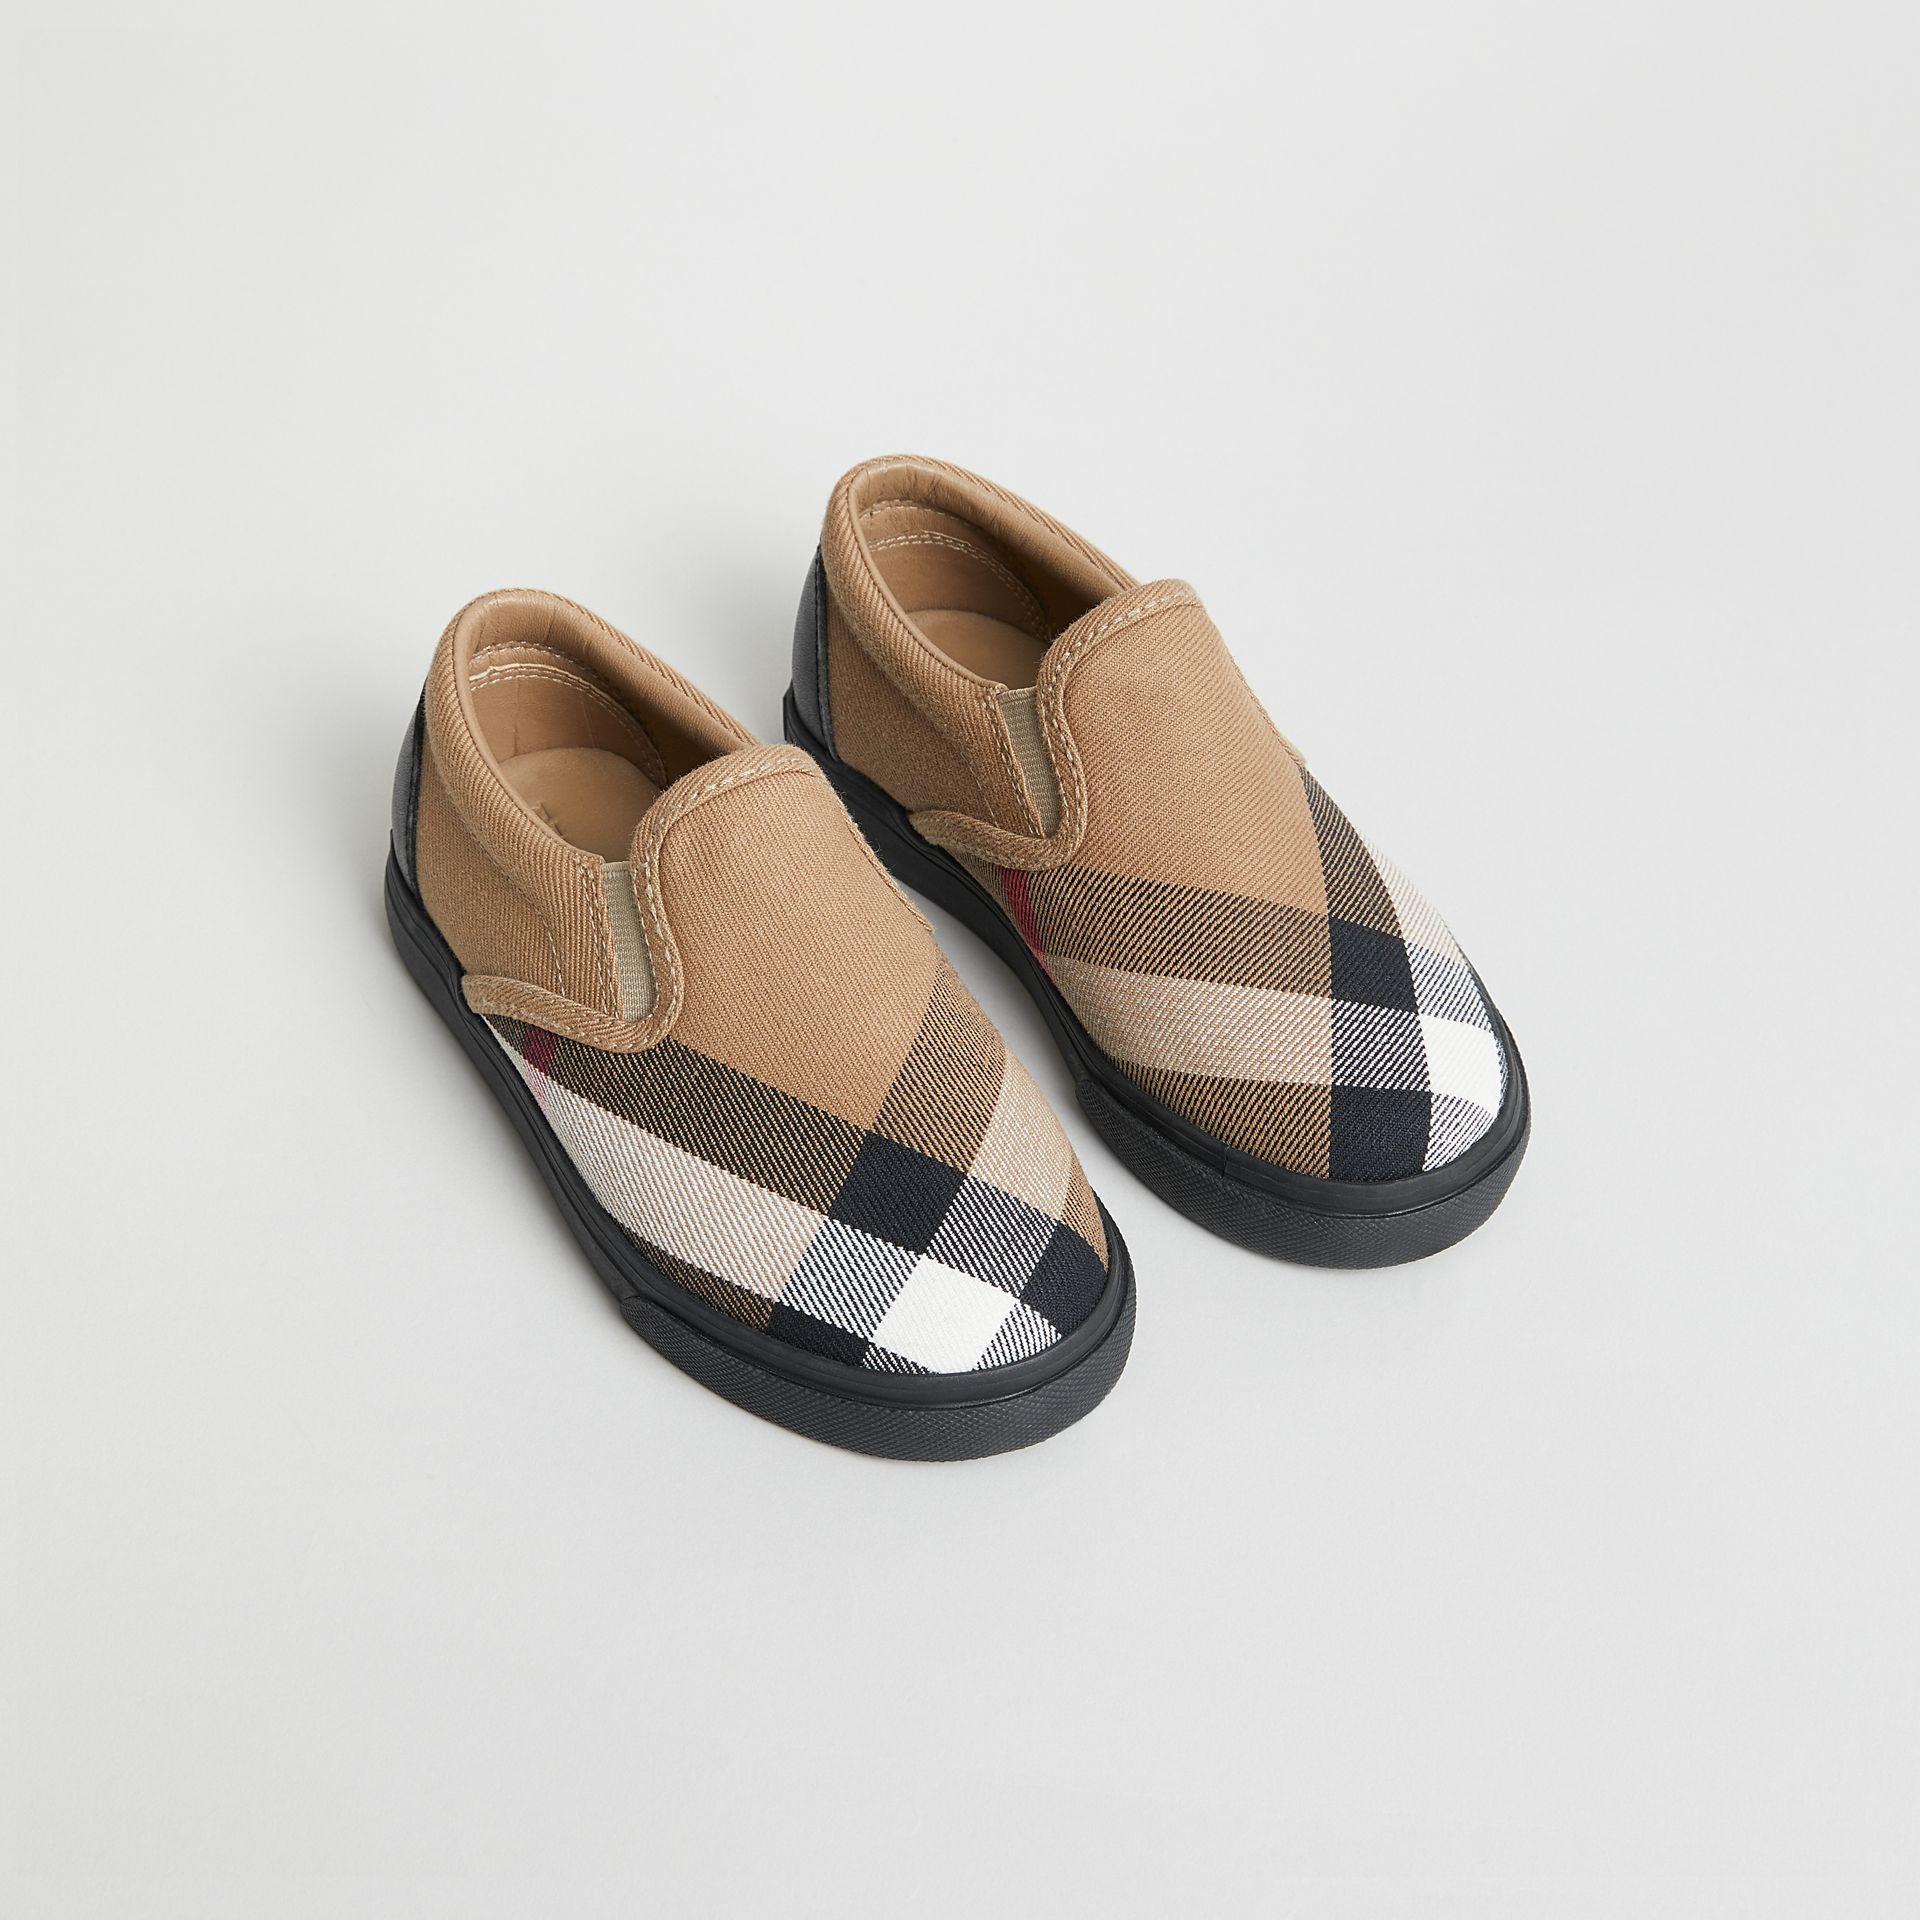 House Check and Leather Slip-on Sneakers in Classic/black | Burberry Canada - gallery image 0